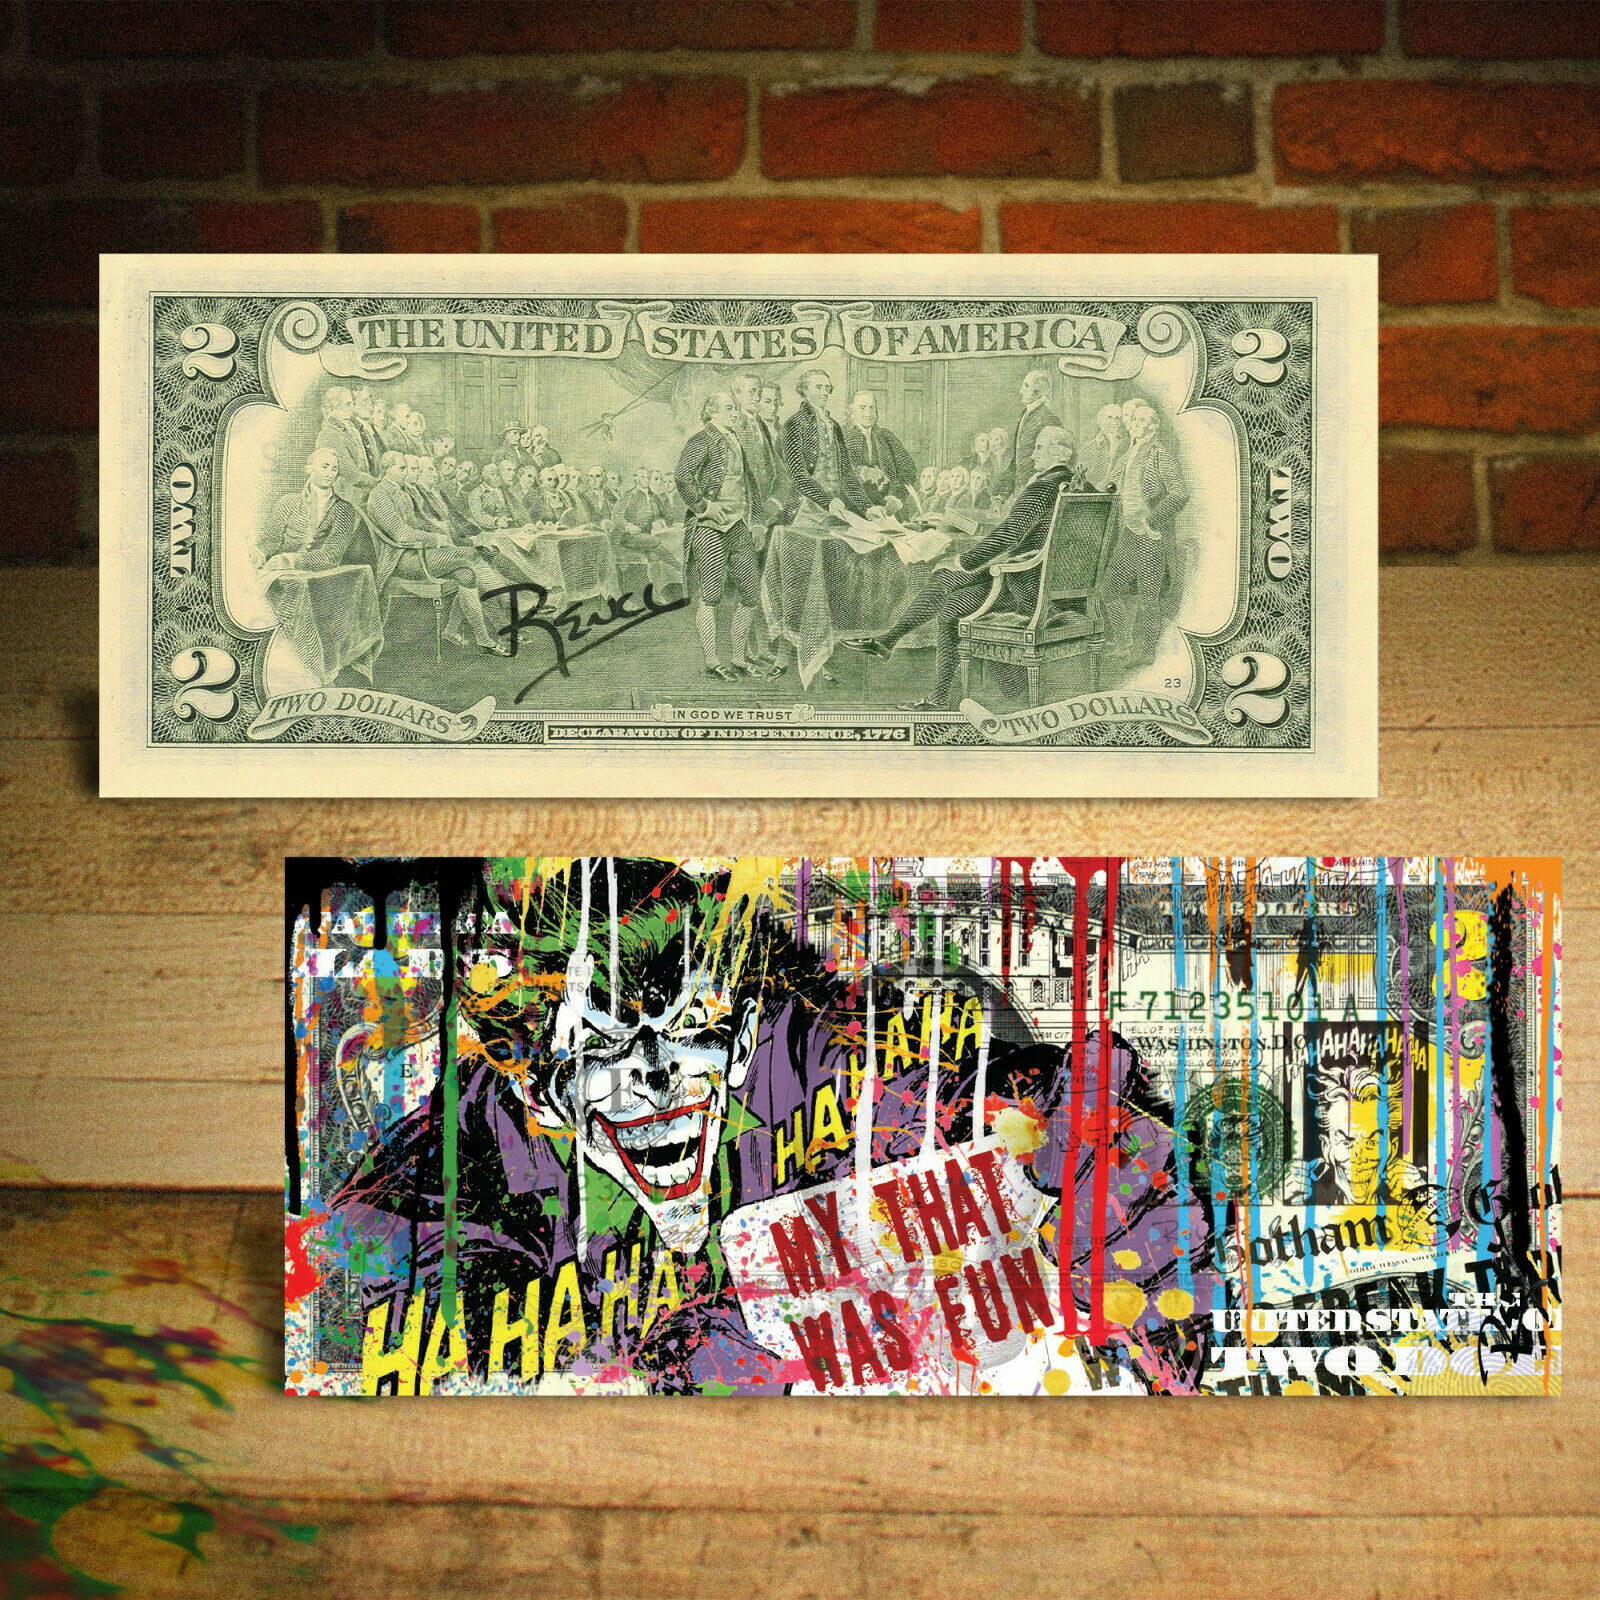 JOKER DC Comics Movie Genuine Legal Tender $2 U.S. Bill HAND-SIGNED by Rency 1